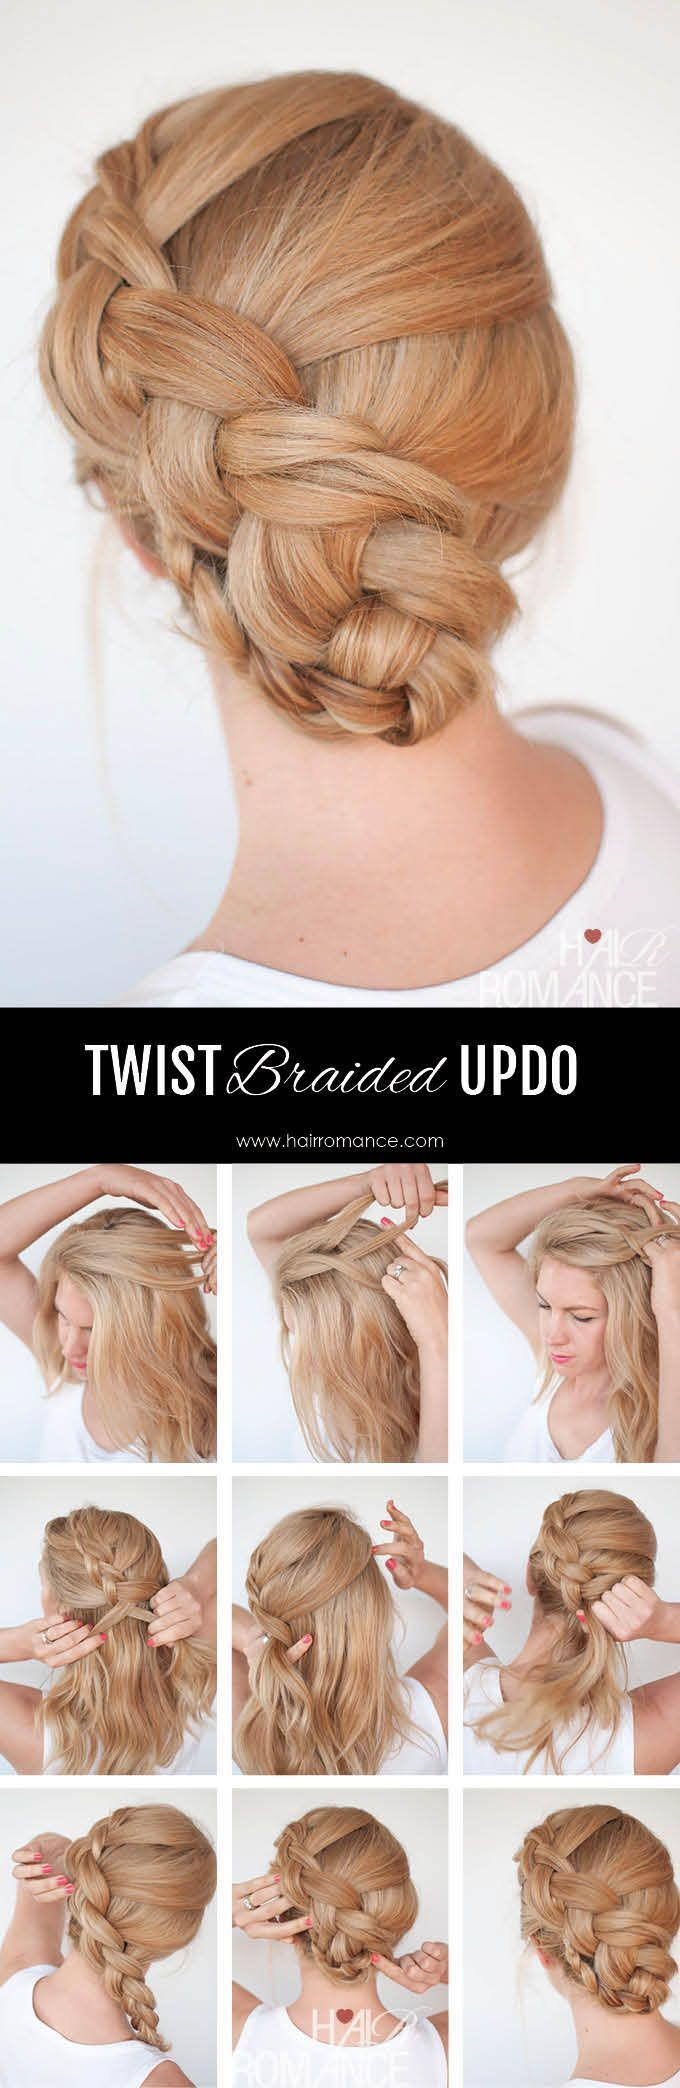 Admirable 1000 Ideas About Step By Step Hairstyles On Pinterest Hairstyle Short Hairstyles Gunalazisus